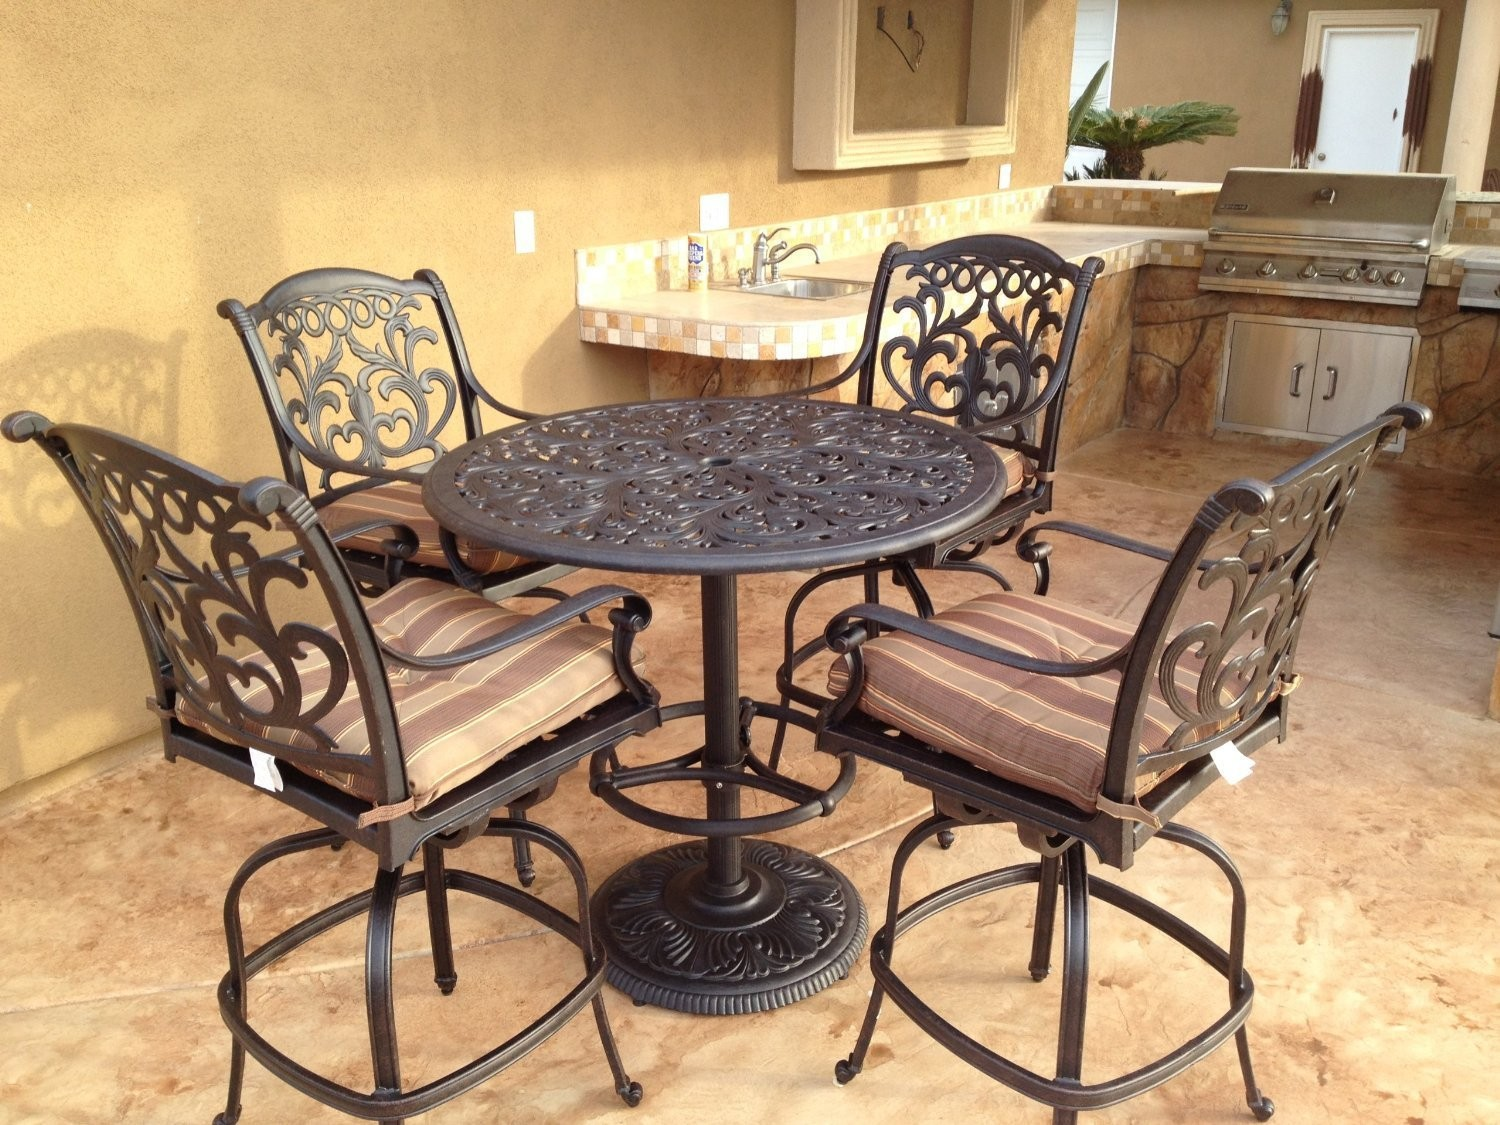 "Mandalay Cast Aluminum Powder Coated 5pc Outdoor Patio Bar Set with 42"" Round Bar Table - Antique Bronze"